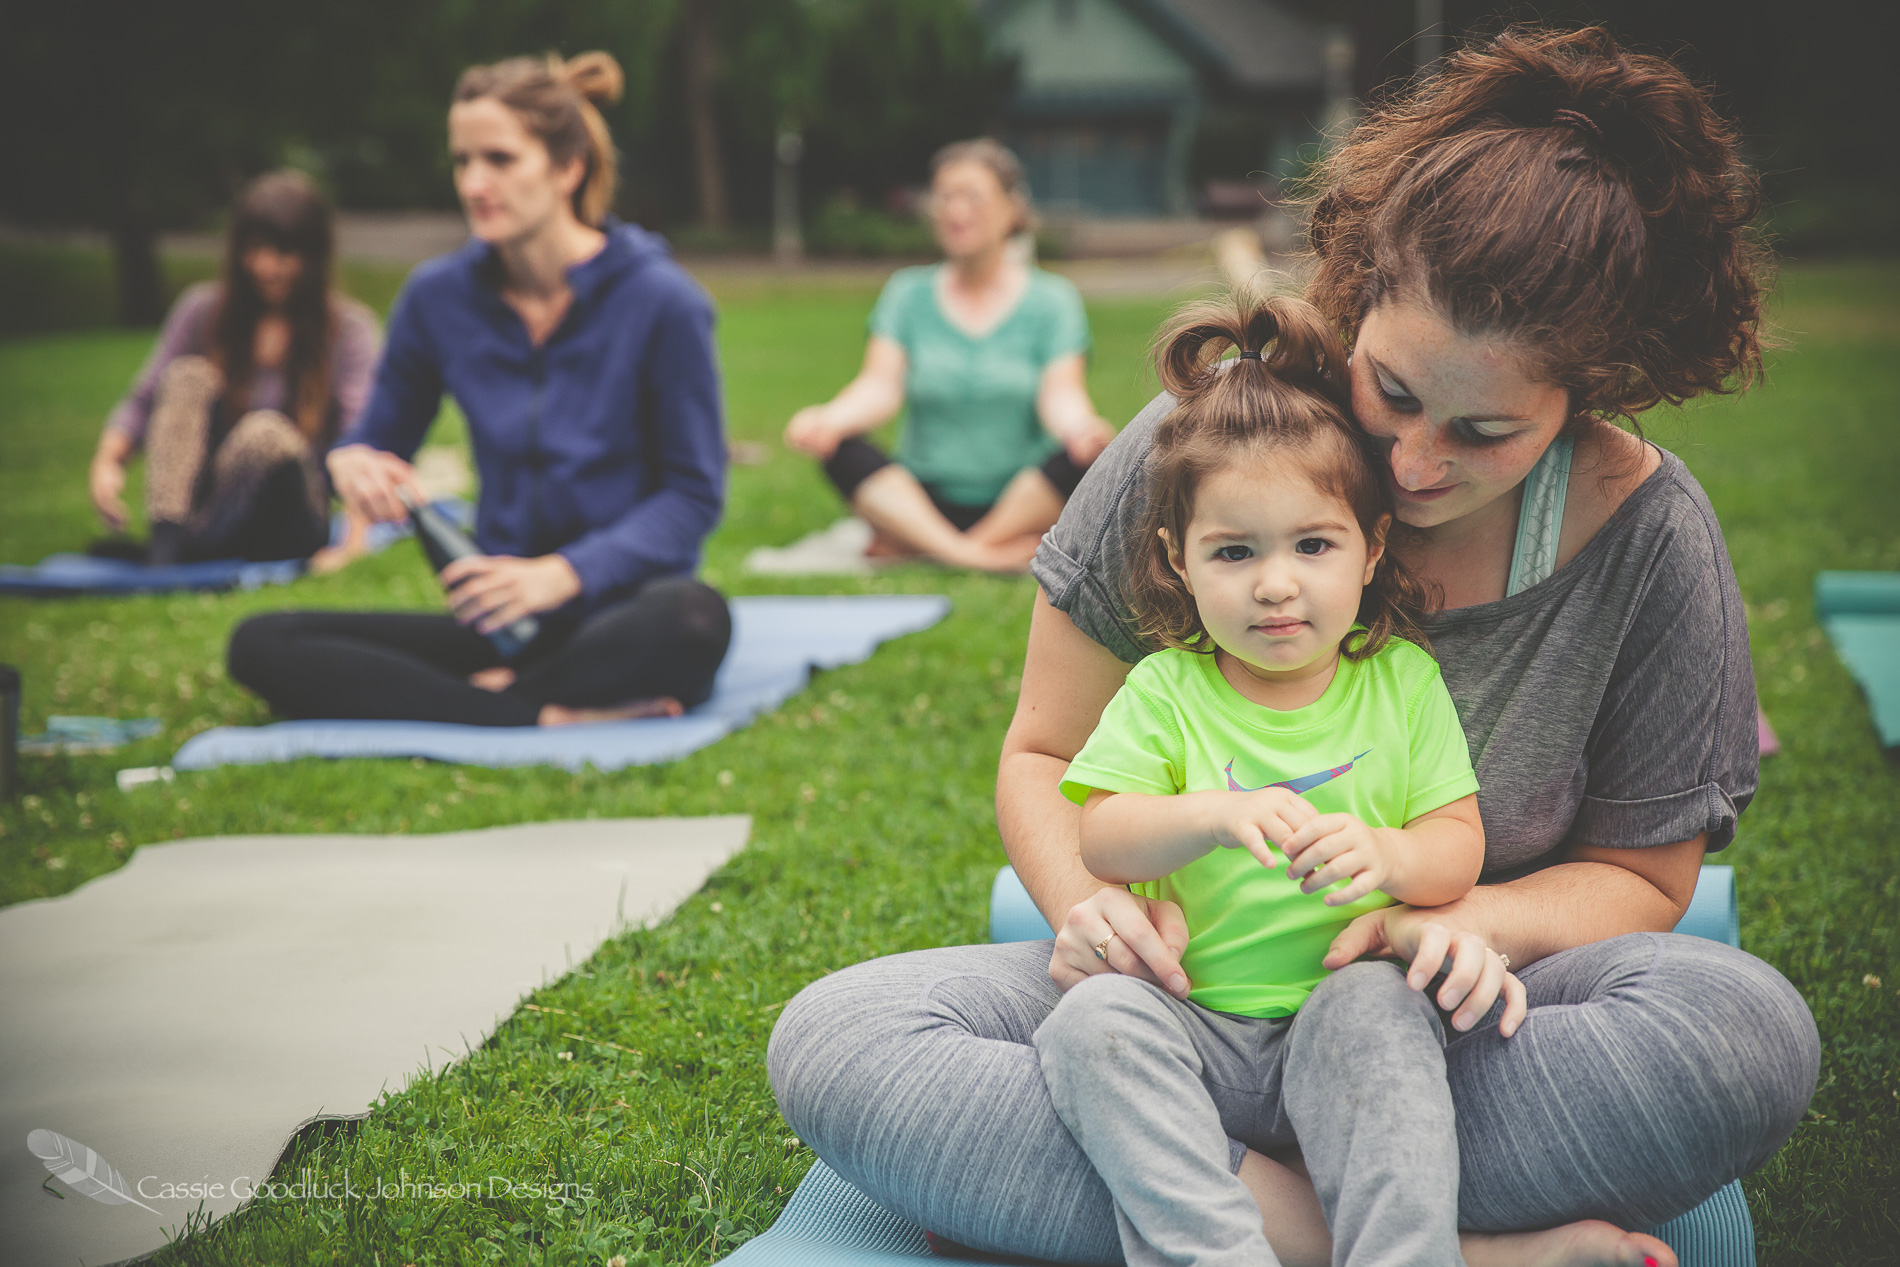 Kids Movement & Mindfulness — Happy Mindful People